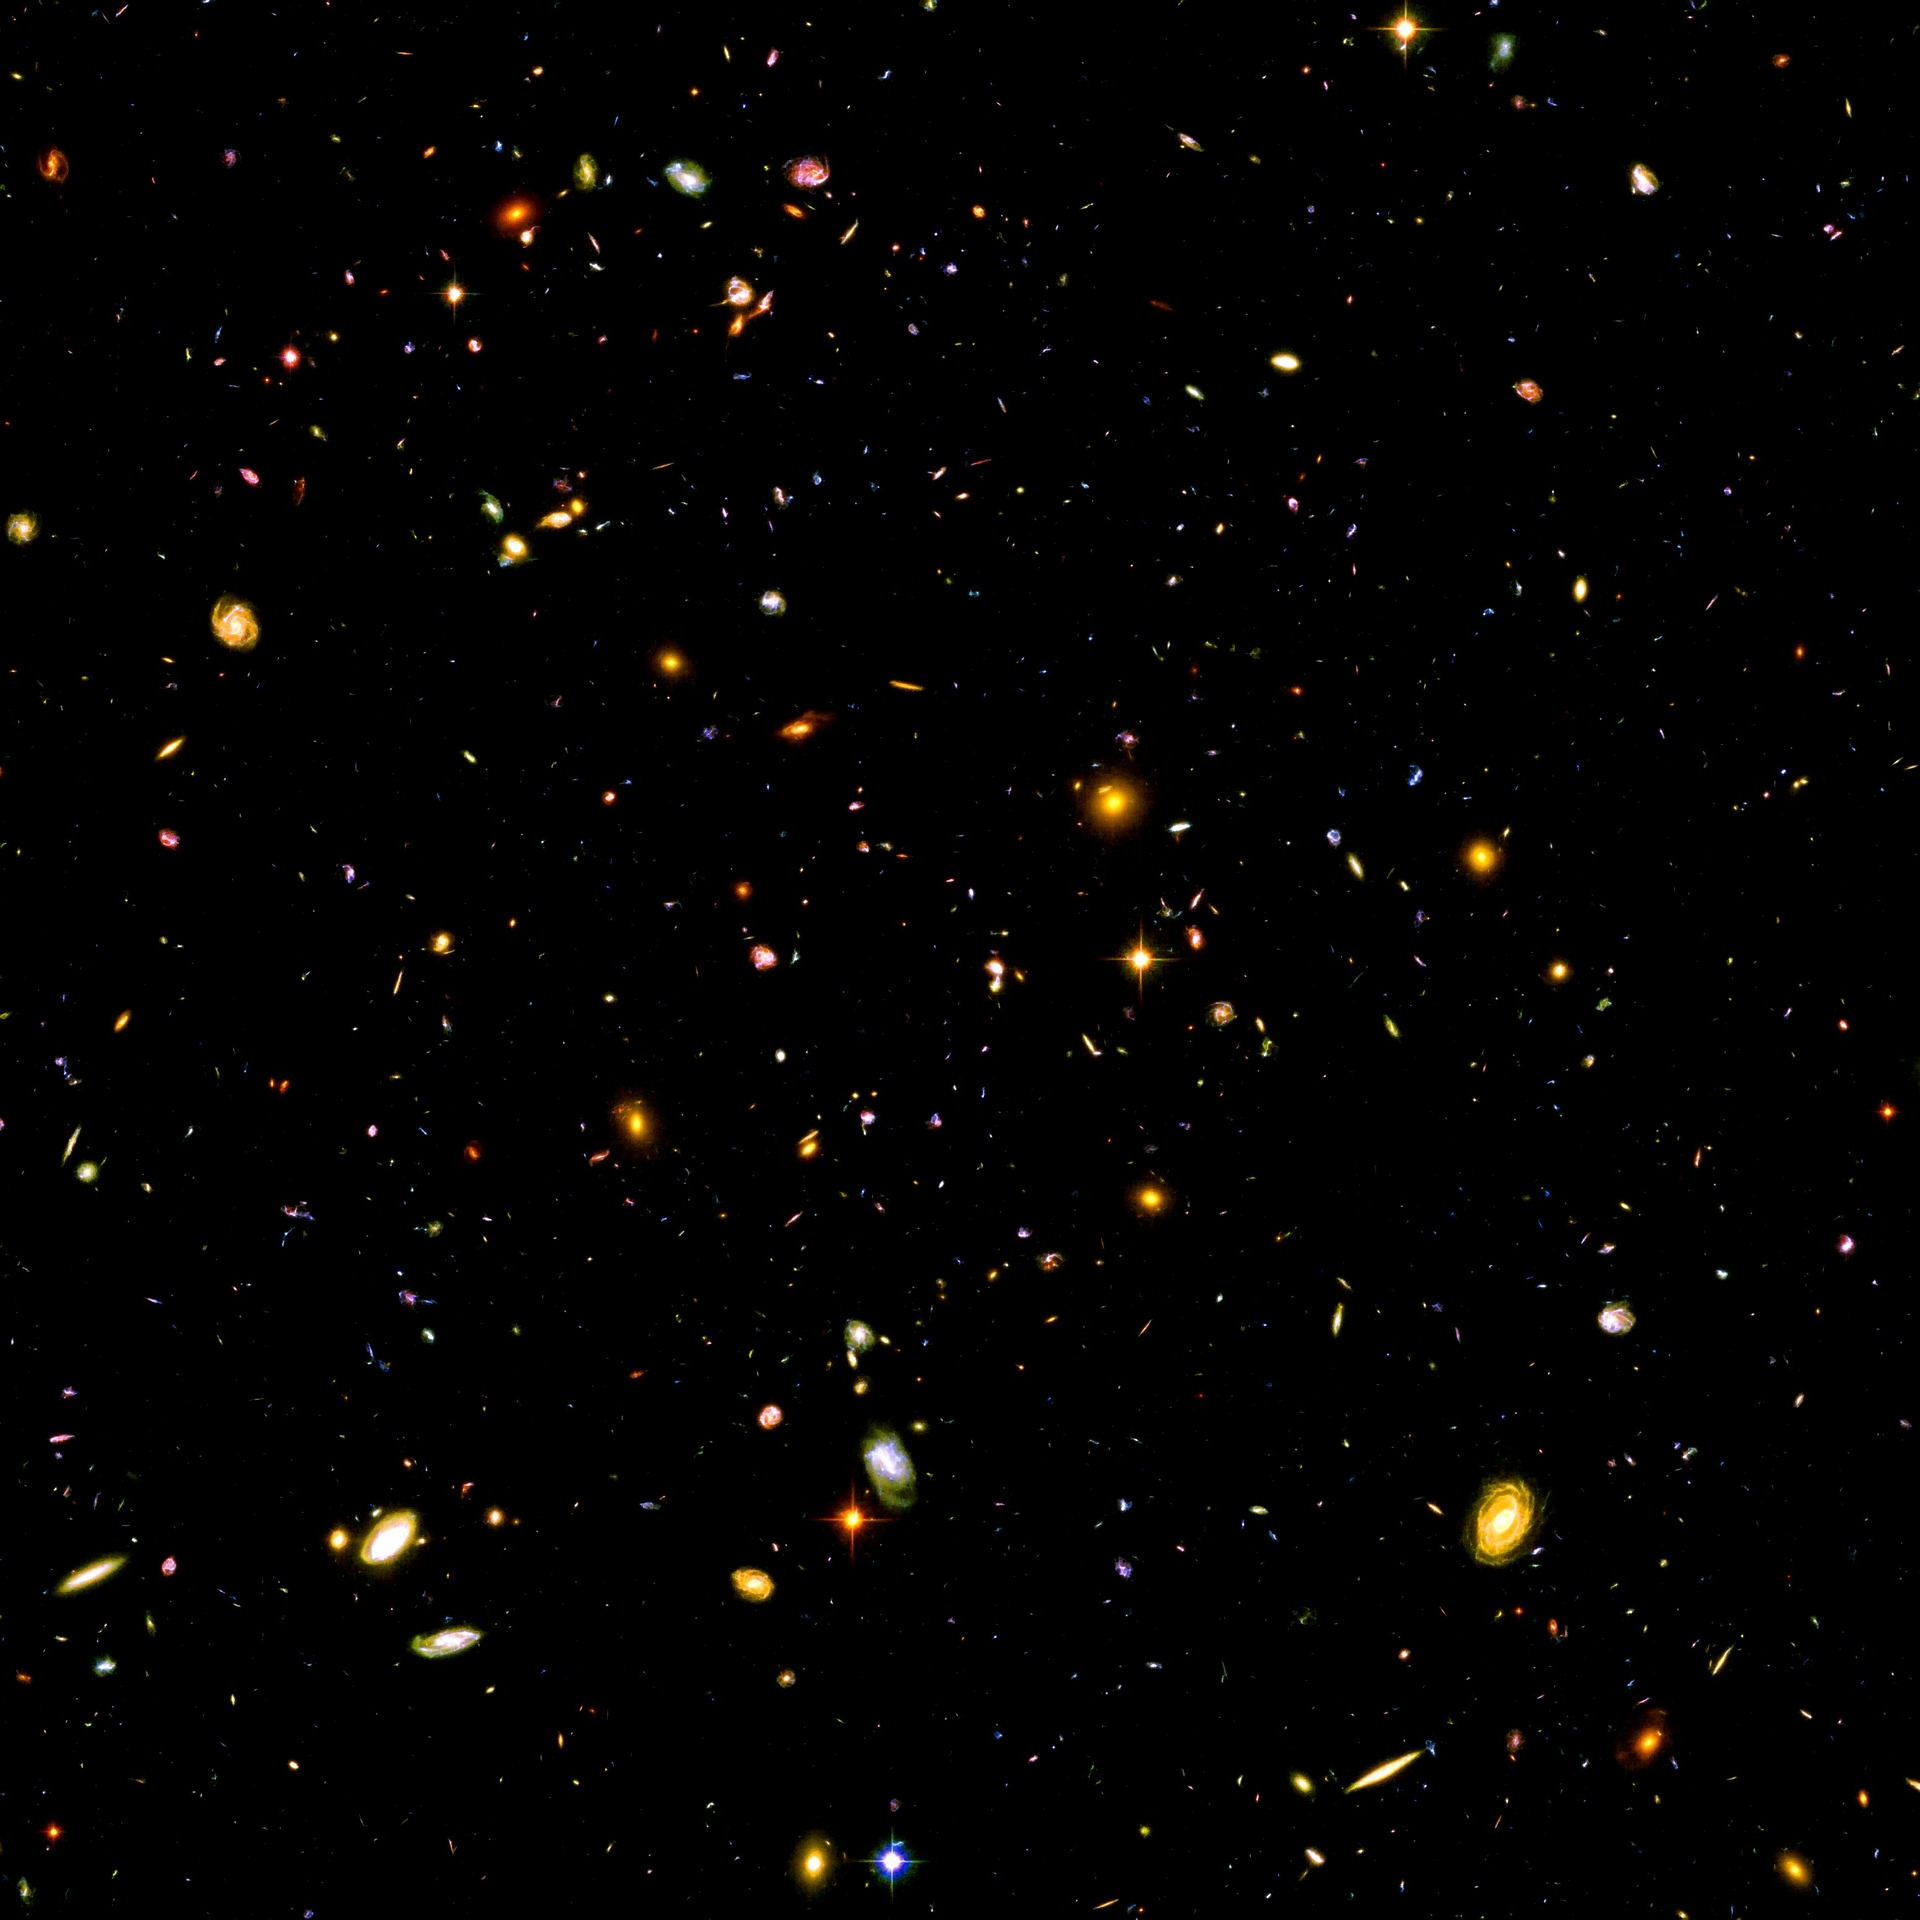 hubble-ultra-deep-field-11011_1920